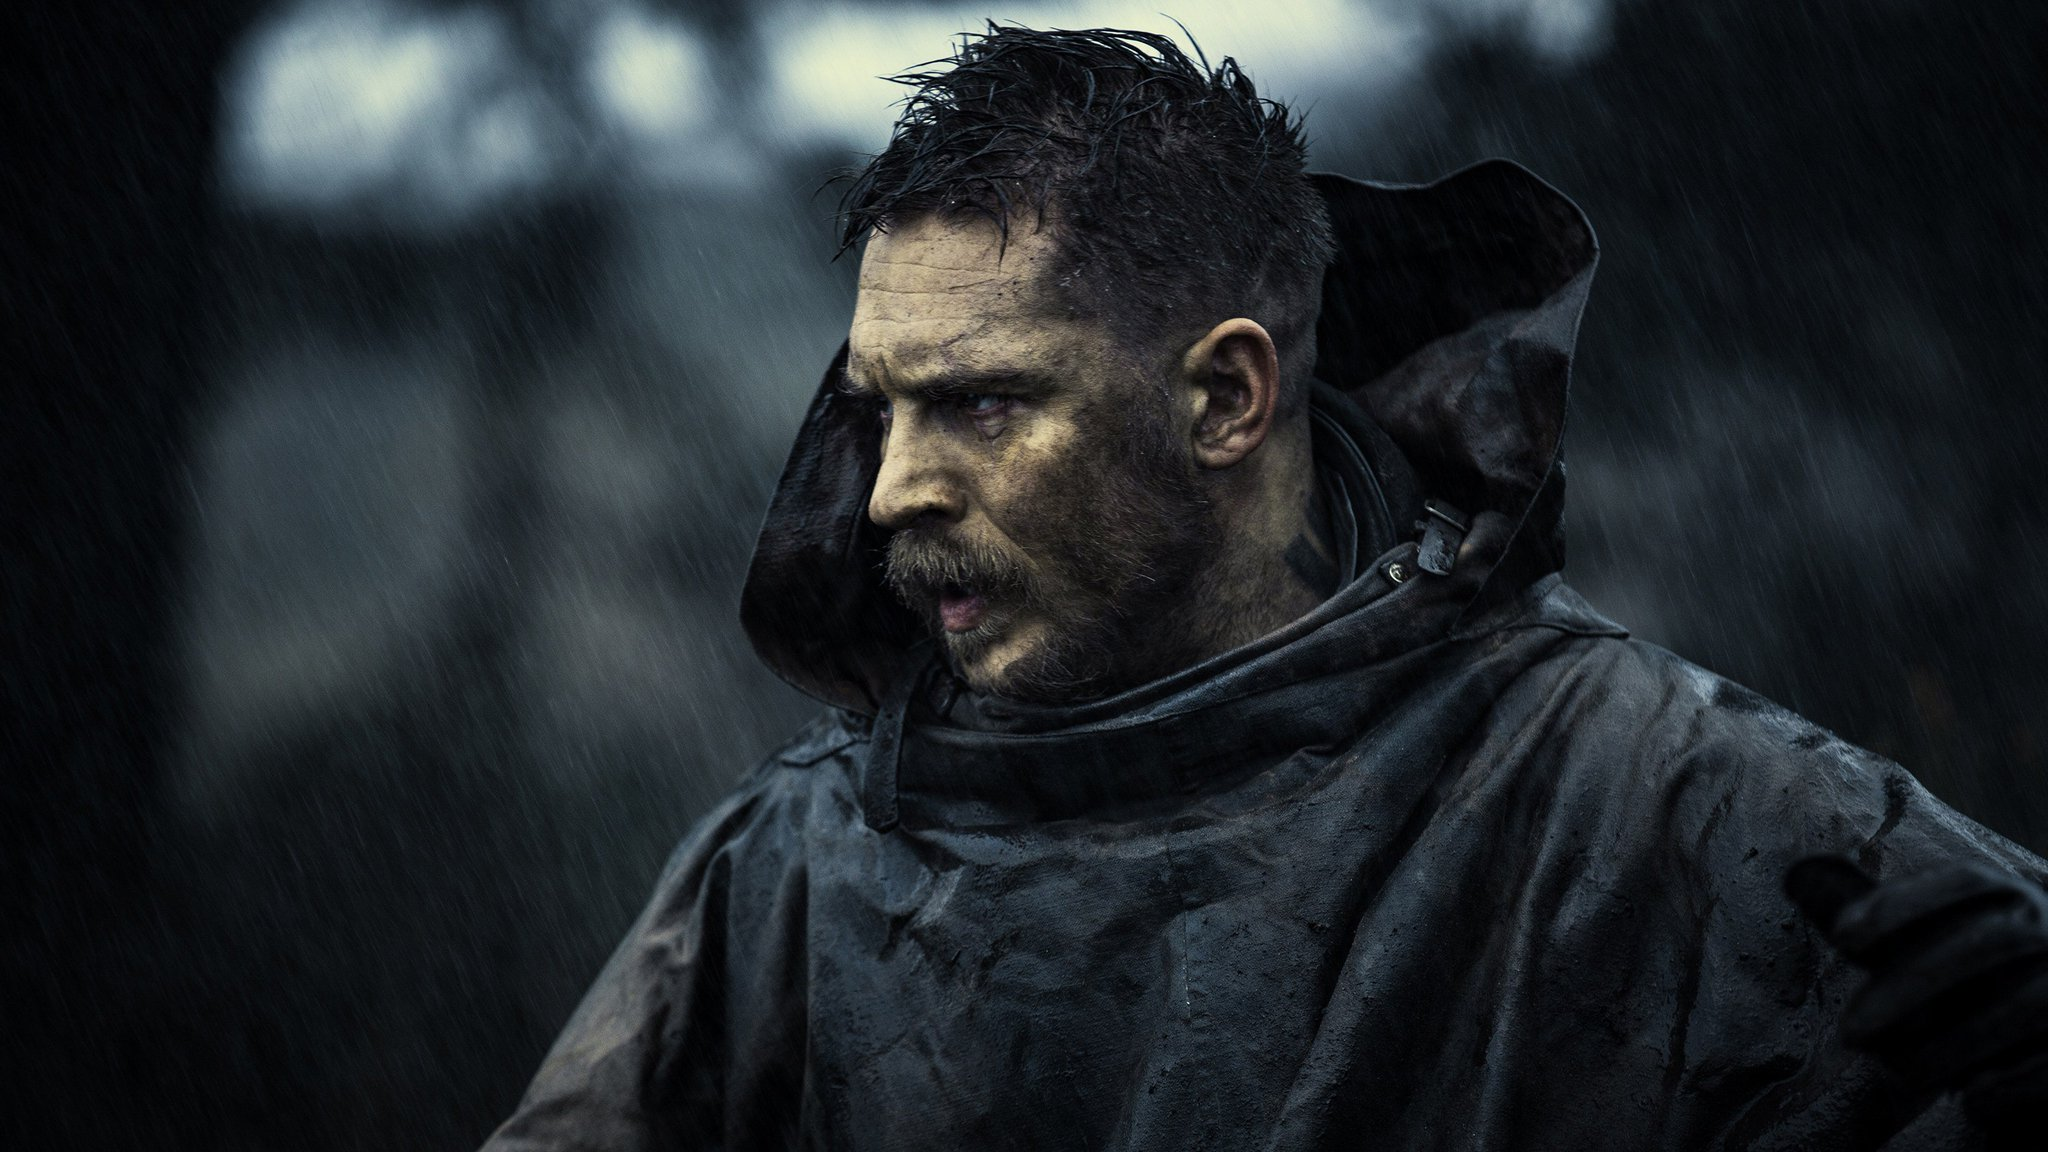 3 reasons to watch Tom Hardy's new show @TabooFX https://t.co/U6m14e4fpr https://t.co/yjy5RLMZPu